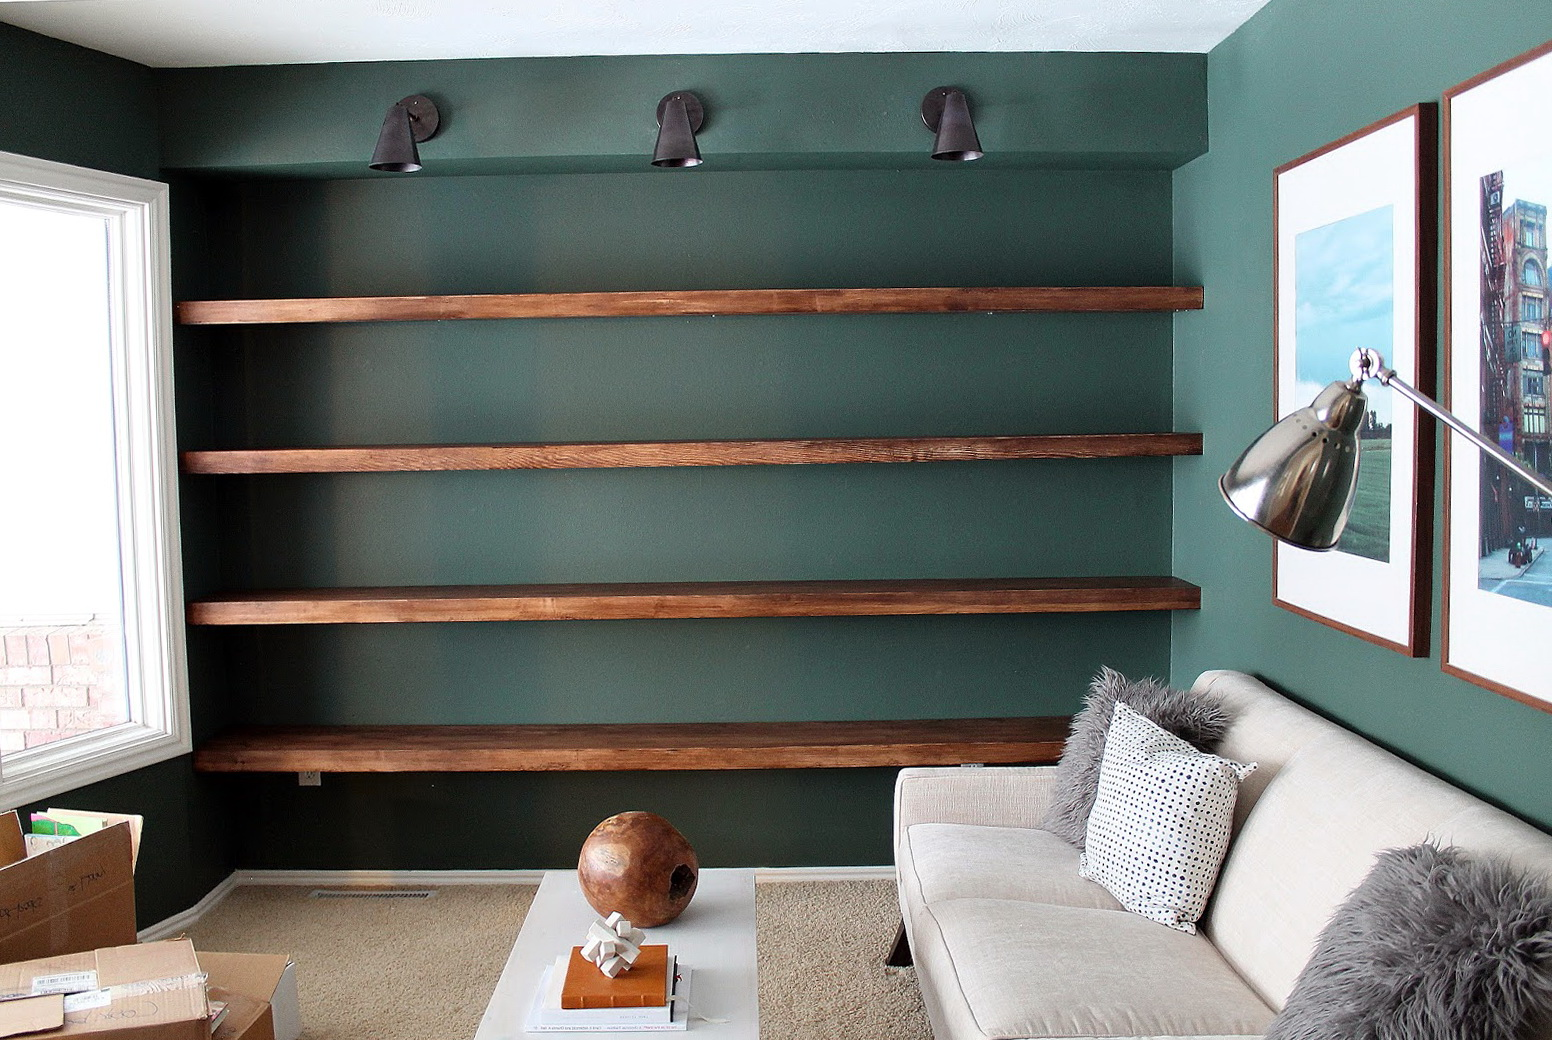 Diy Shelves On Wall